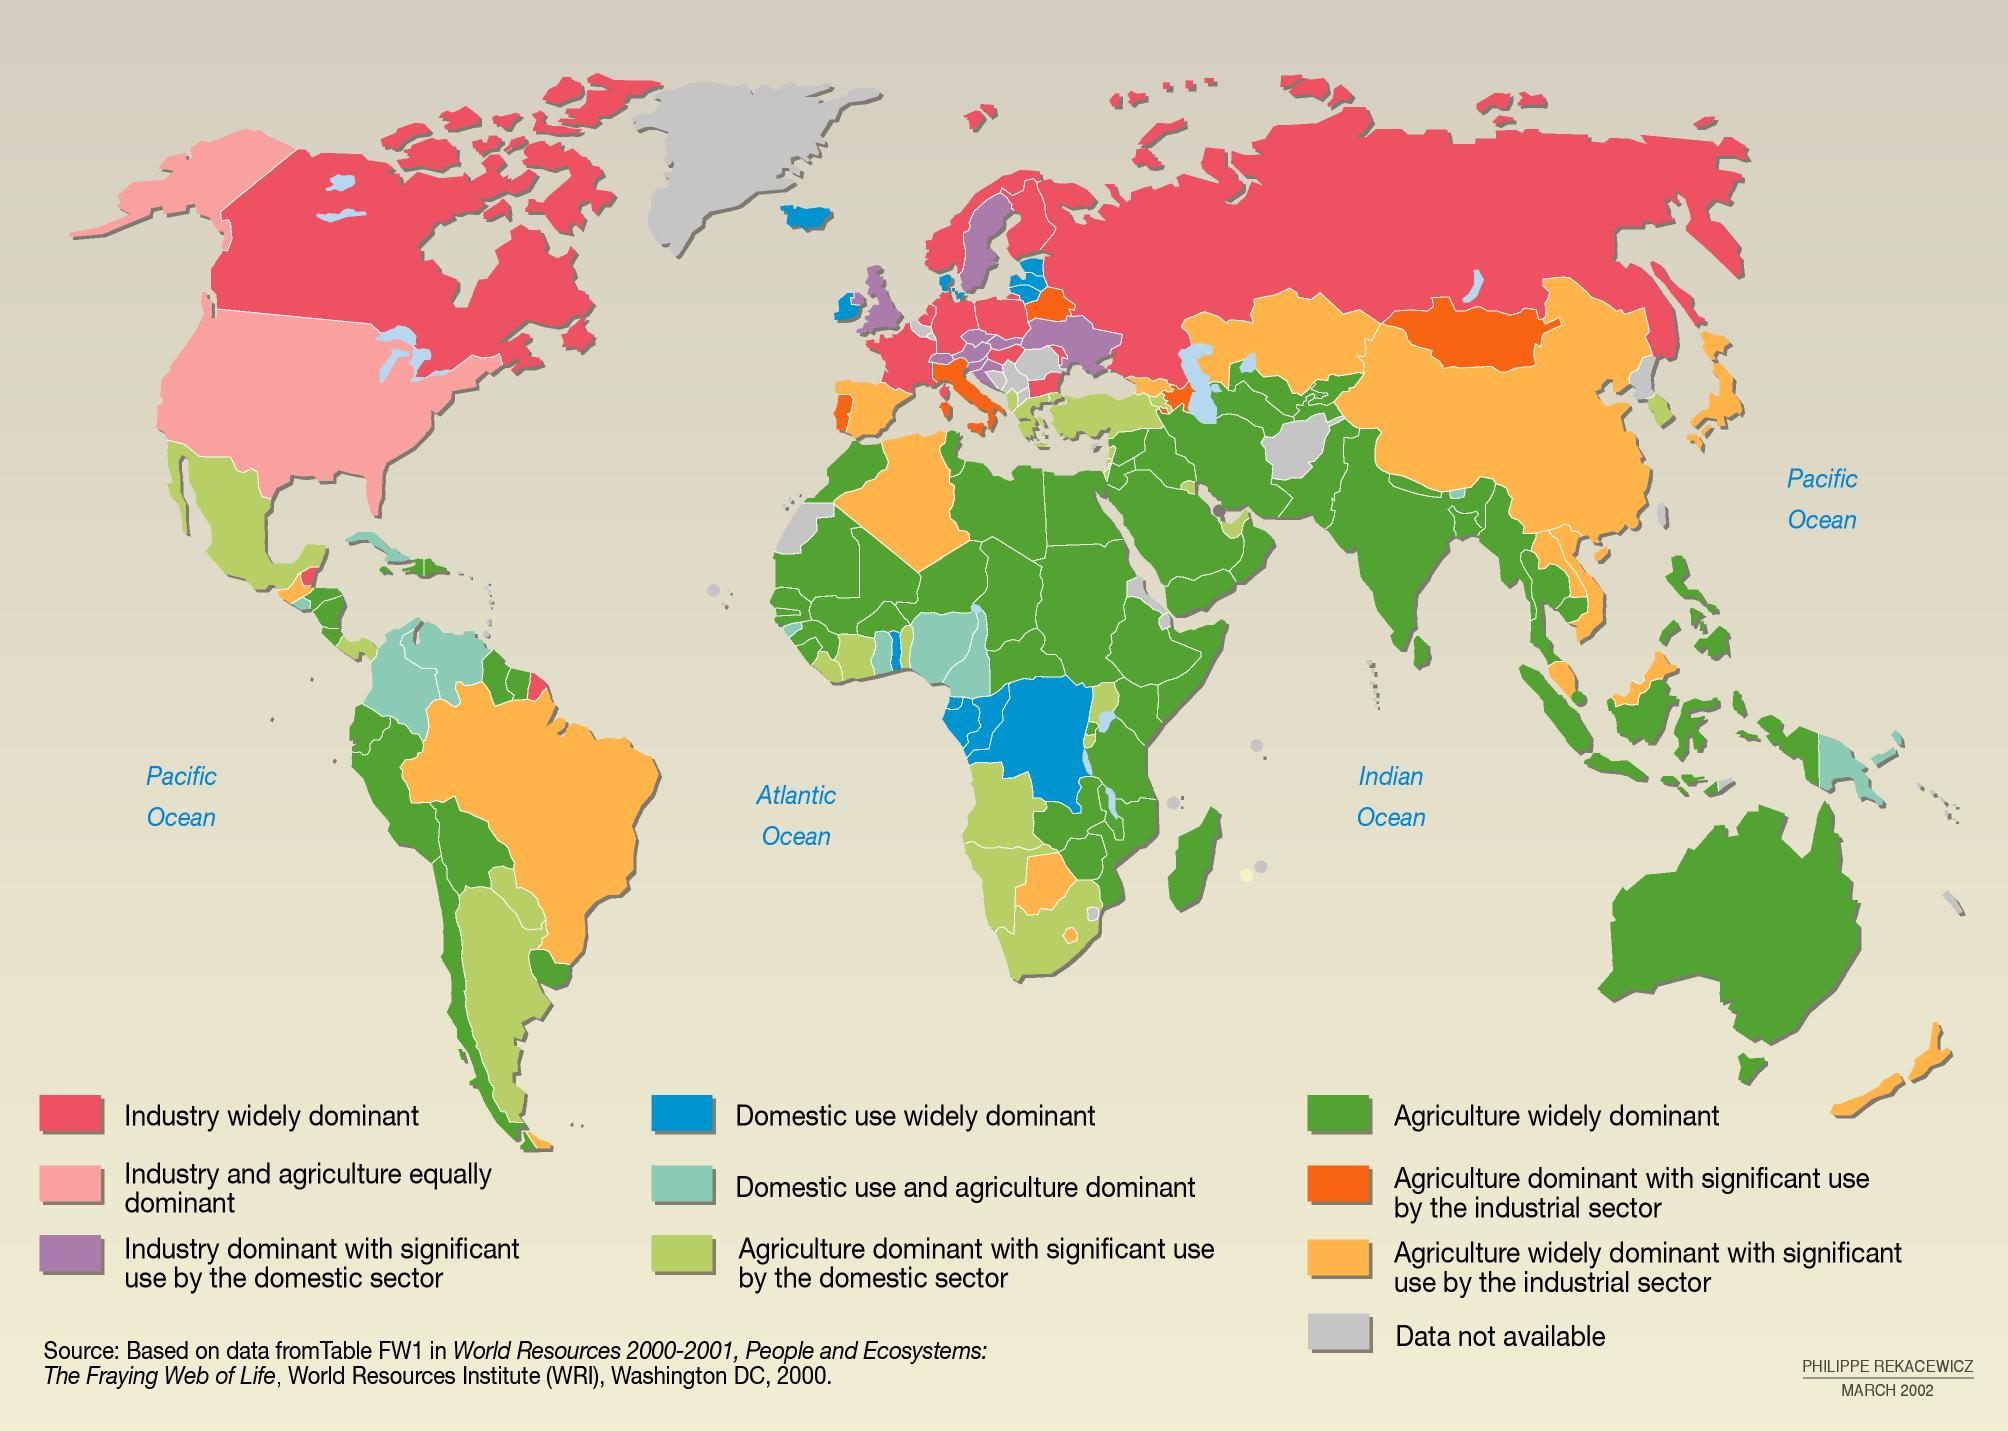 Freshwater Use by Country